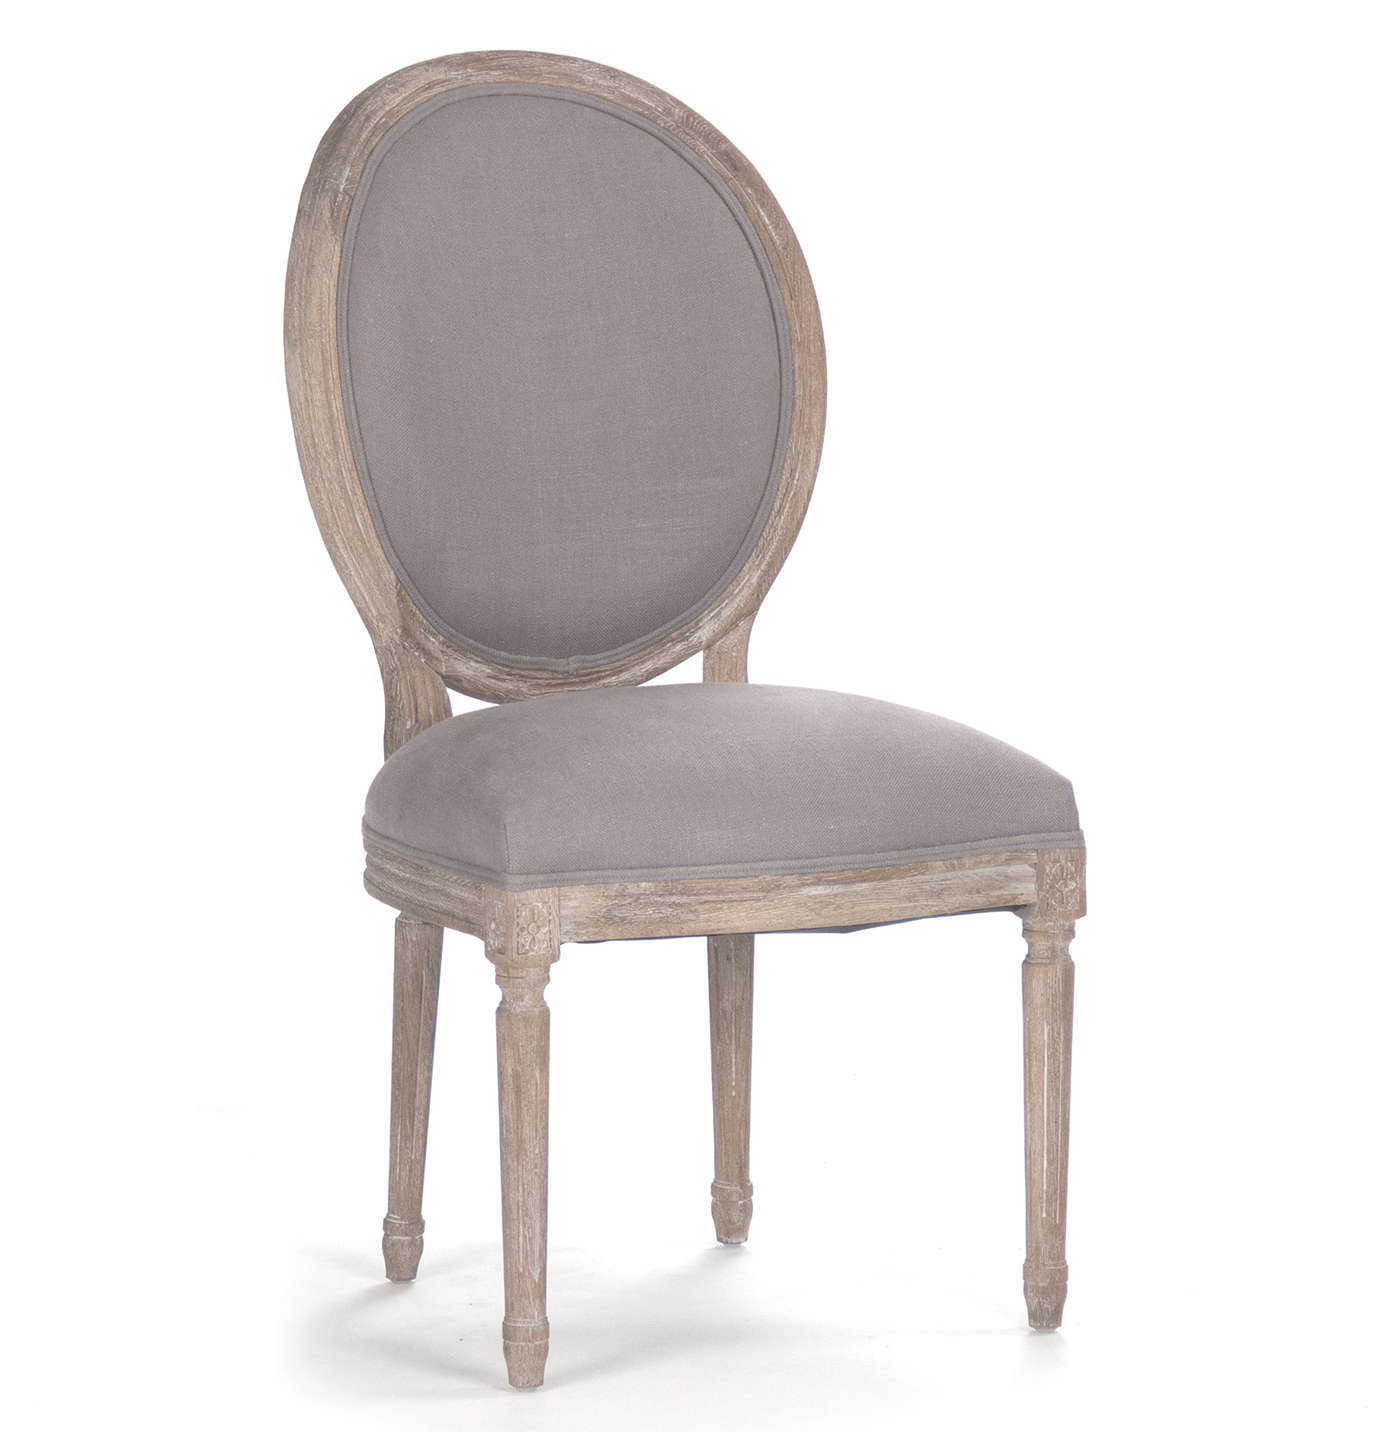 Pair Madeleine French Country Oval Grey Linen Dining Side Chair